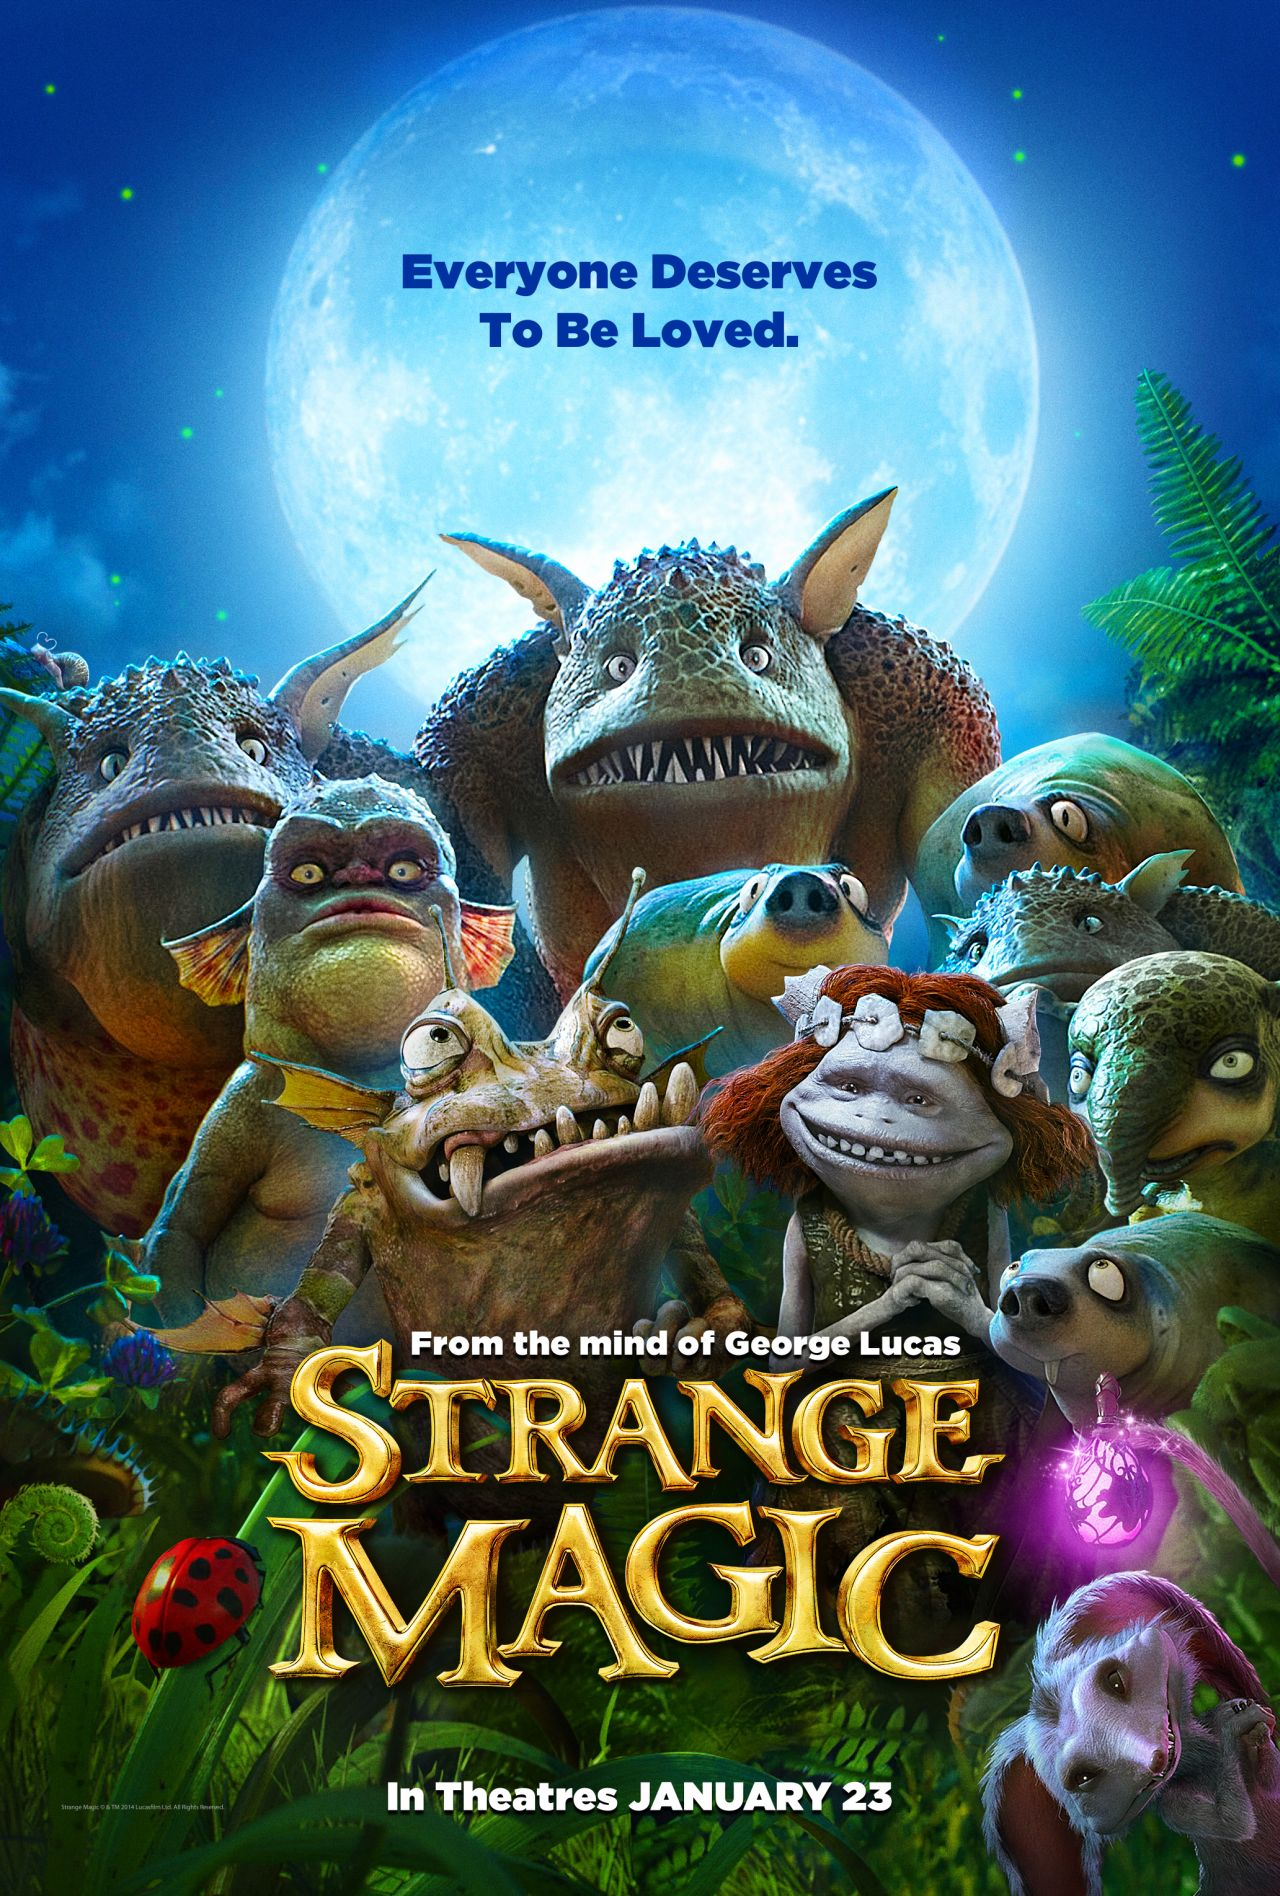 Strange Magic Poster The Disney Backed Animated Movie From Lucasfilm Is Directed